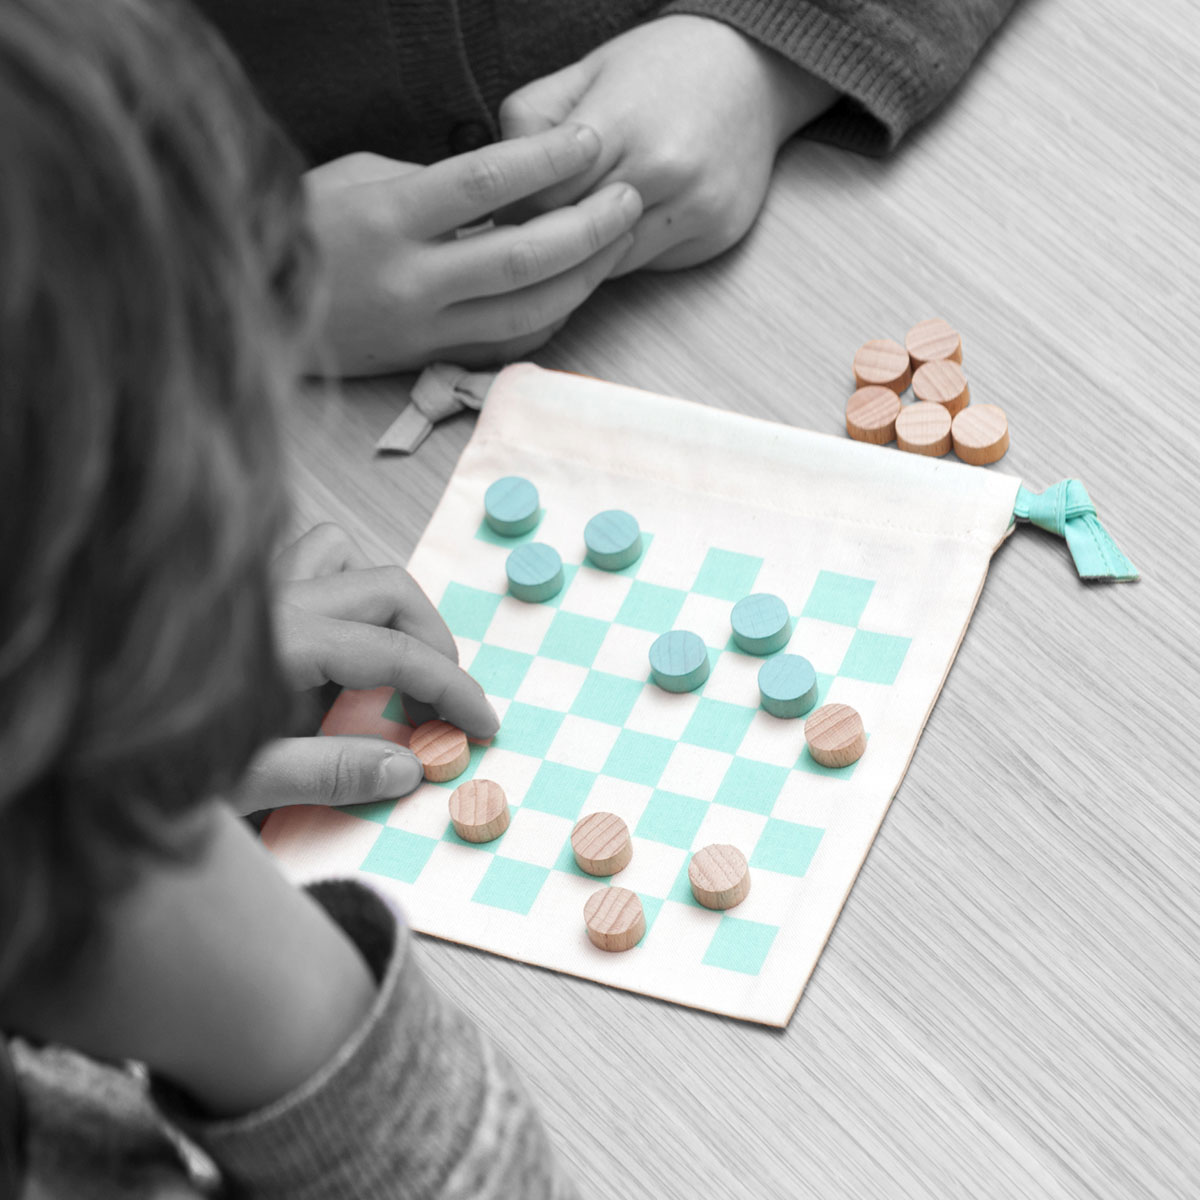 Les Jouets Libres Time To Play Checkers Set in Airplane with kids